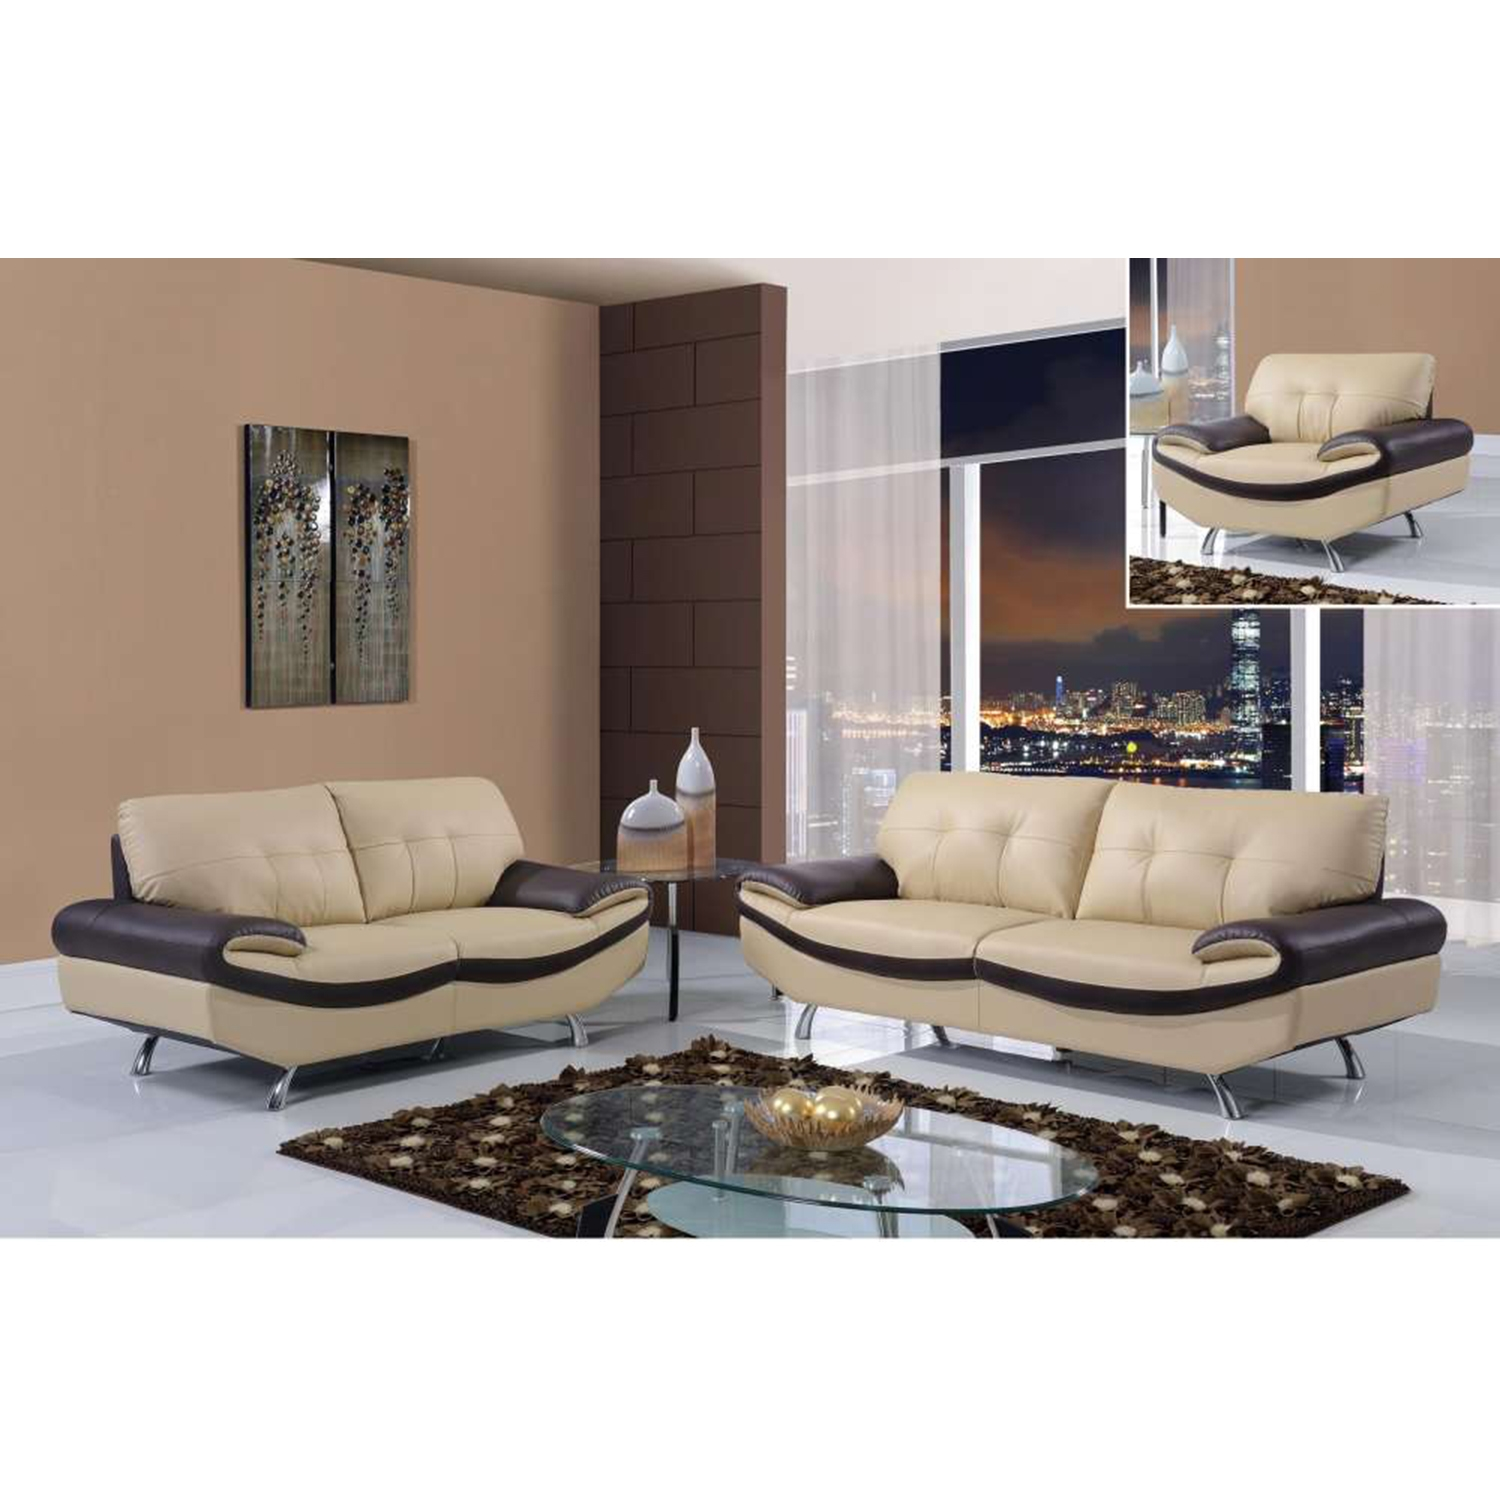 Gracie Sofa Set - Cappuccino/Chocolate Leather